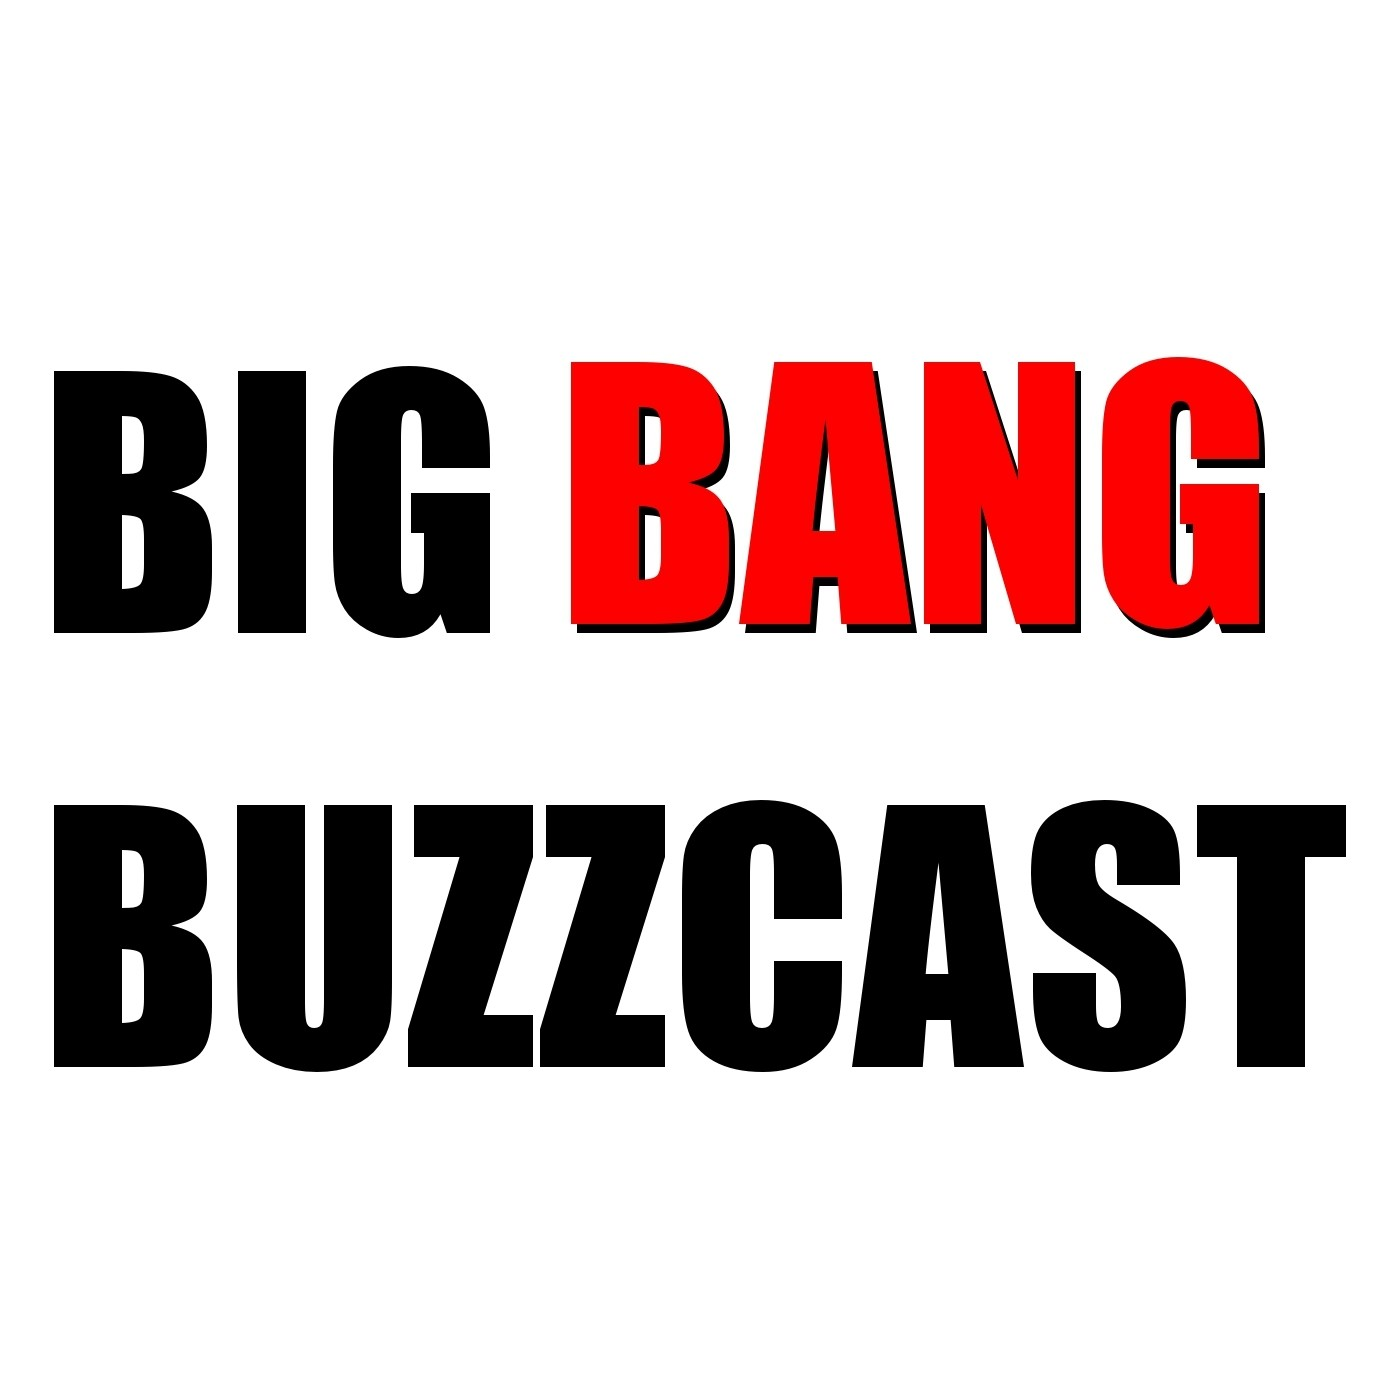 Big Bang Buzzcast Episode 202: The Middle Earth Paradigm